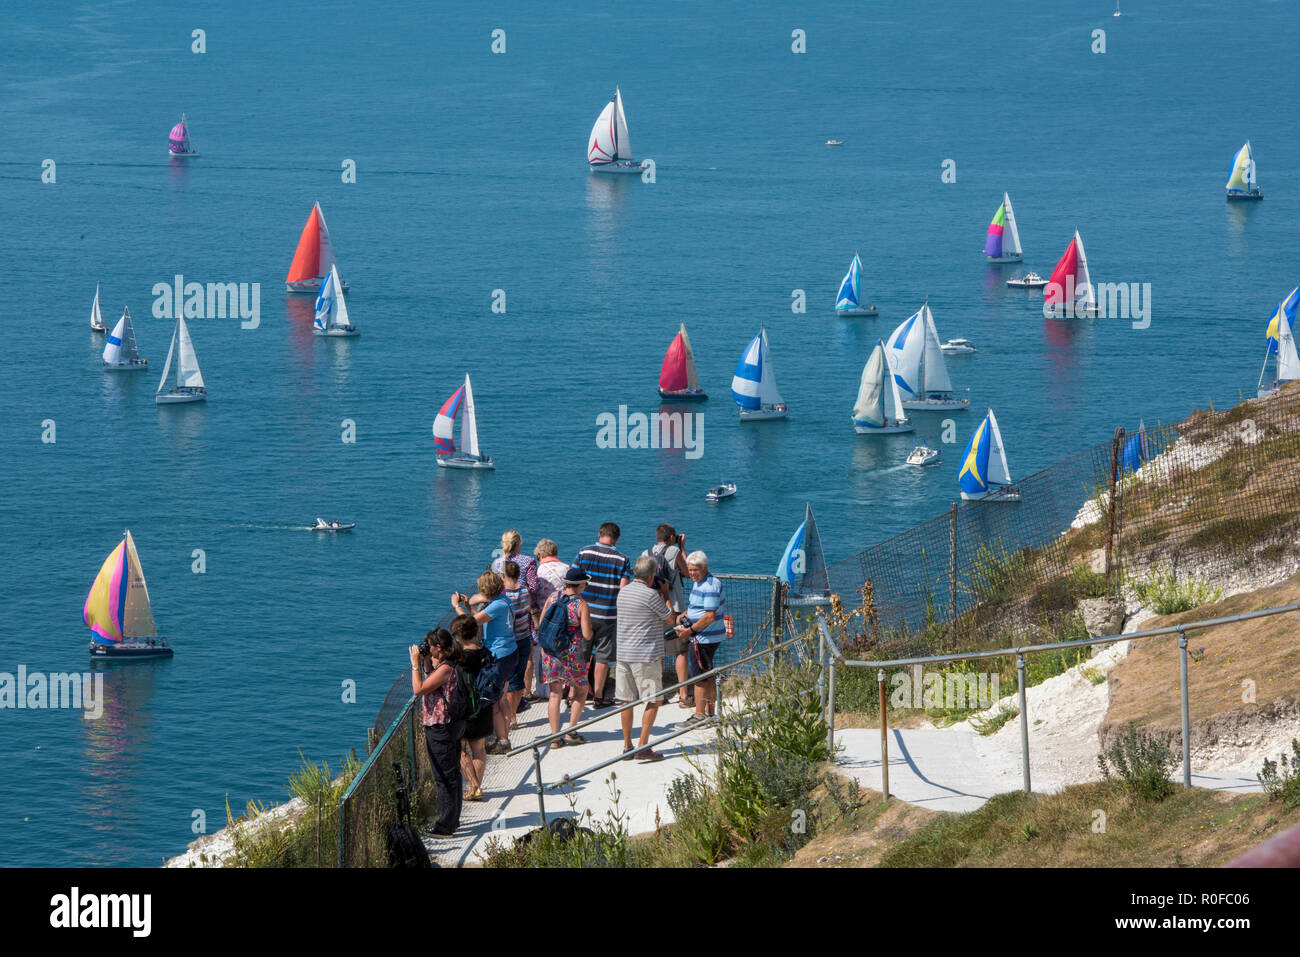 spectators and holiday makers watching the annual round the island yacht race at the needles viewpoint on the isle of wight. - Stock Image